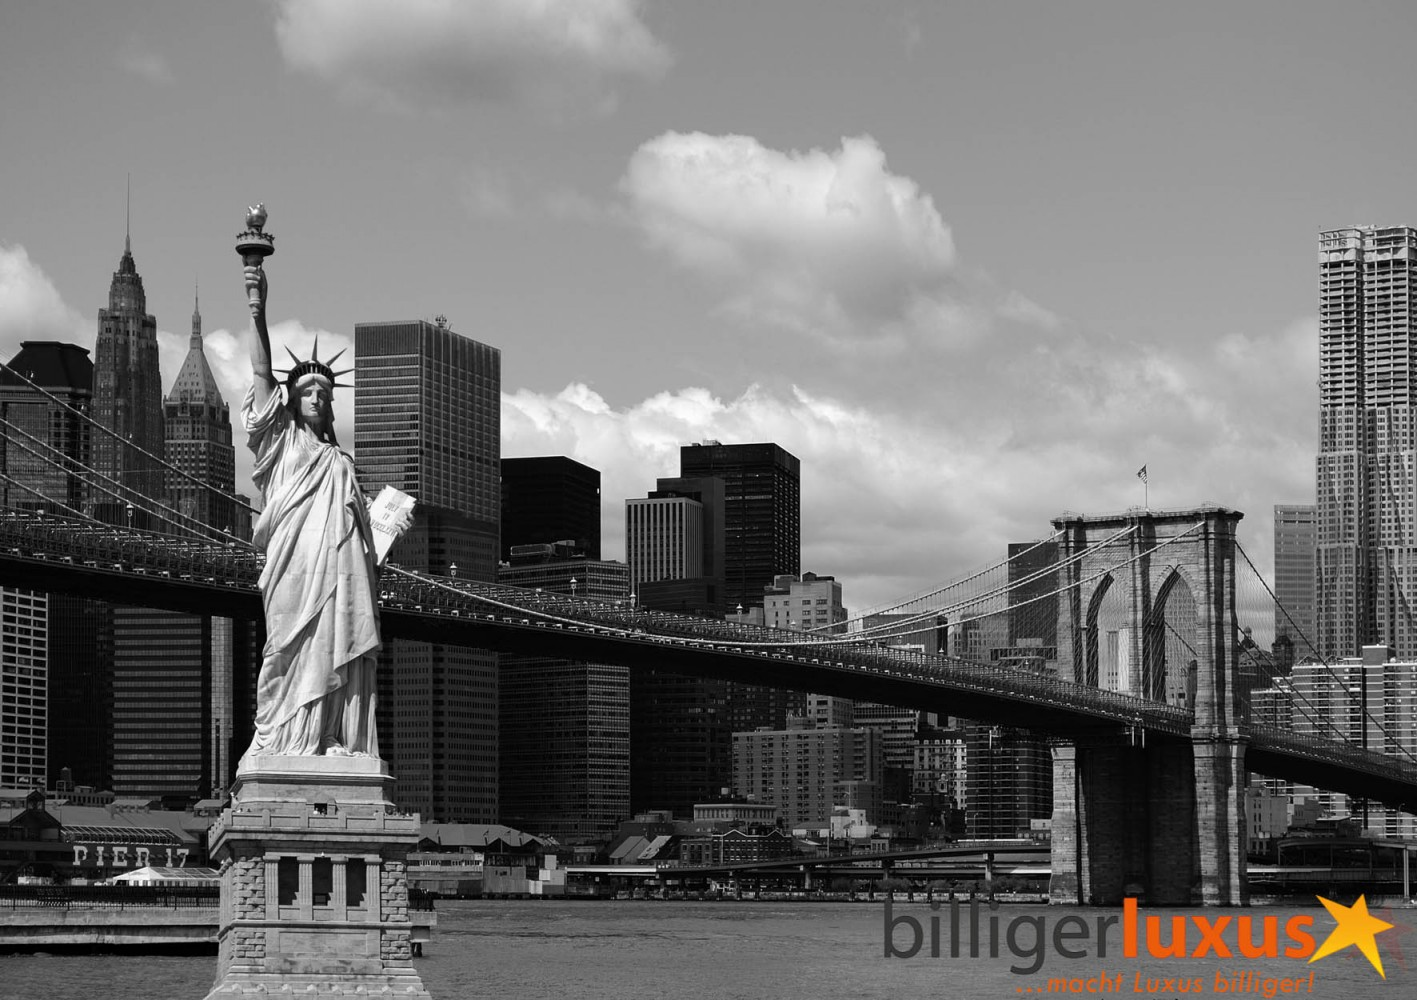 Wall Mural Wallpaper Brooklyn Bridge Statue Of Liberty New York Black White  Photo 360 Cm X 254 Cm / 3.94 Yd X 2.78 Yd Part 19